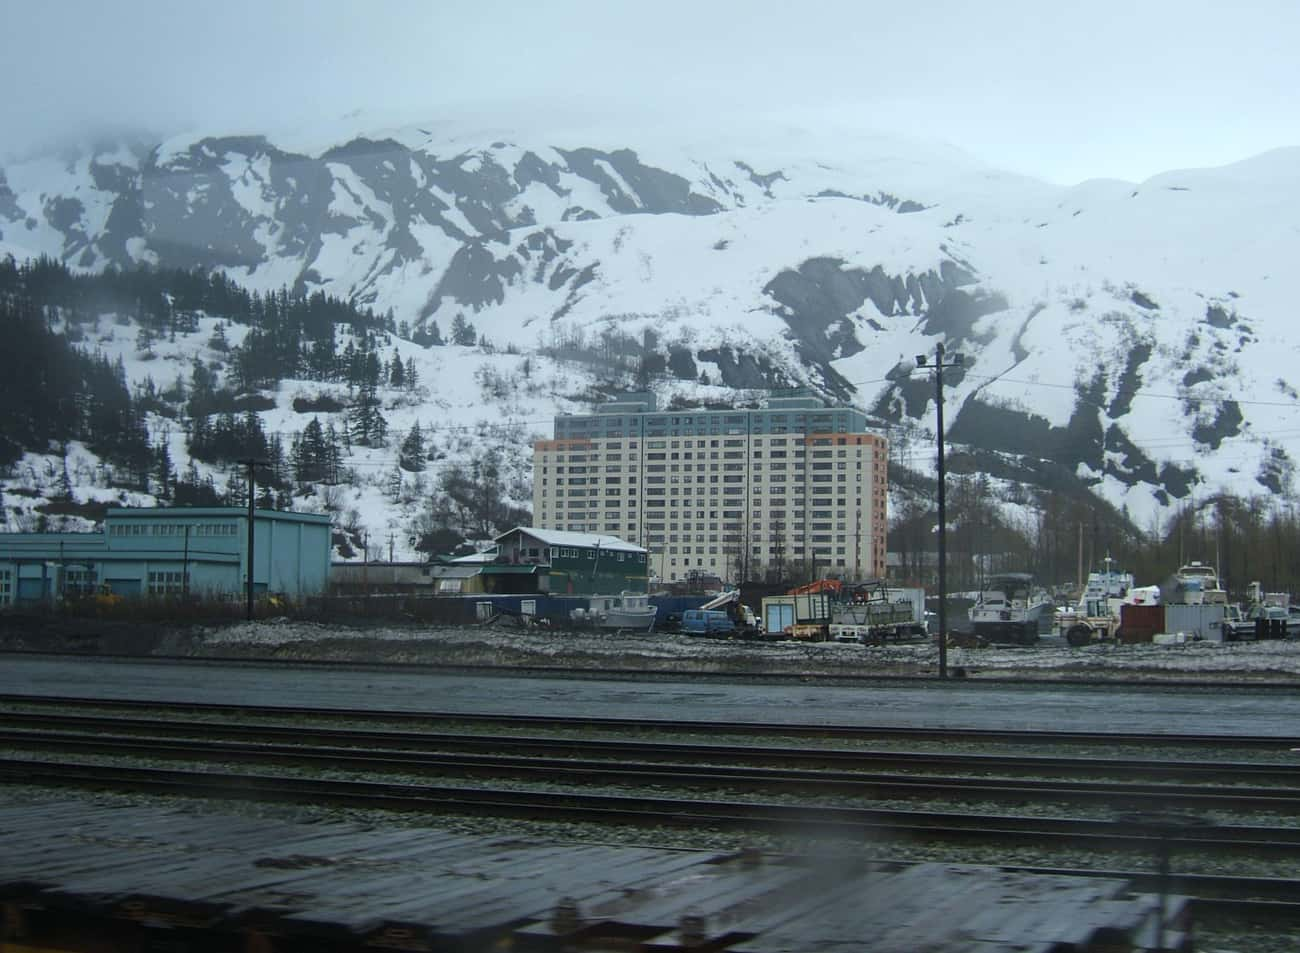 Whittier, AK – Everyone Lives In One Building